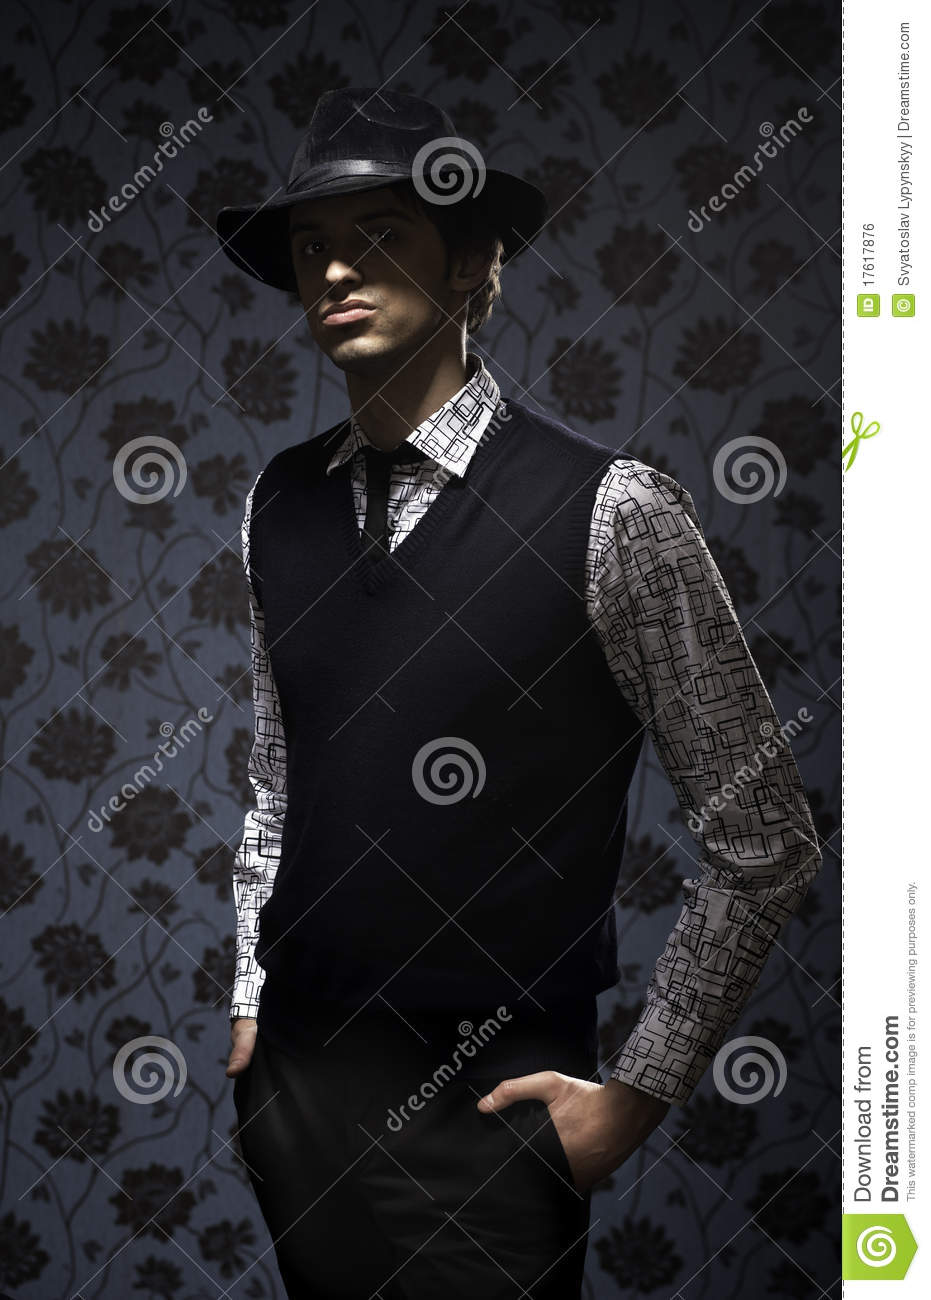 Gangster In Dark Key On Wallpapers Background Royalty Free